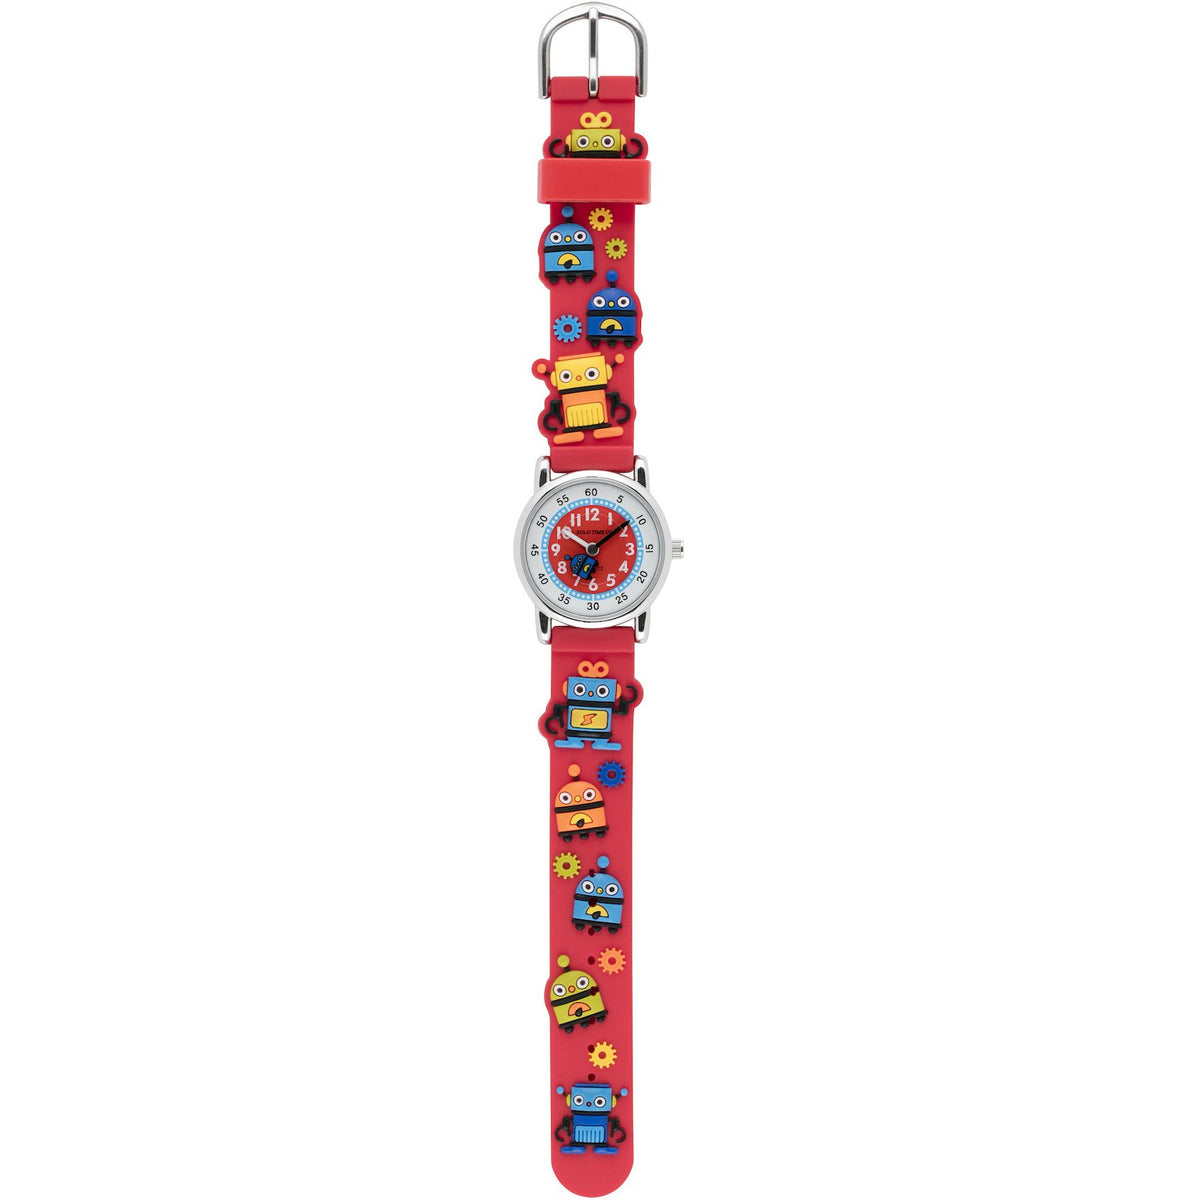 Solo Time Children's Quartz Watch Robot Red canada ontario analog